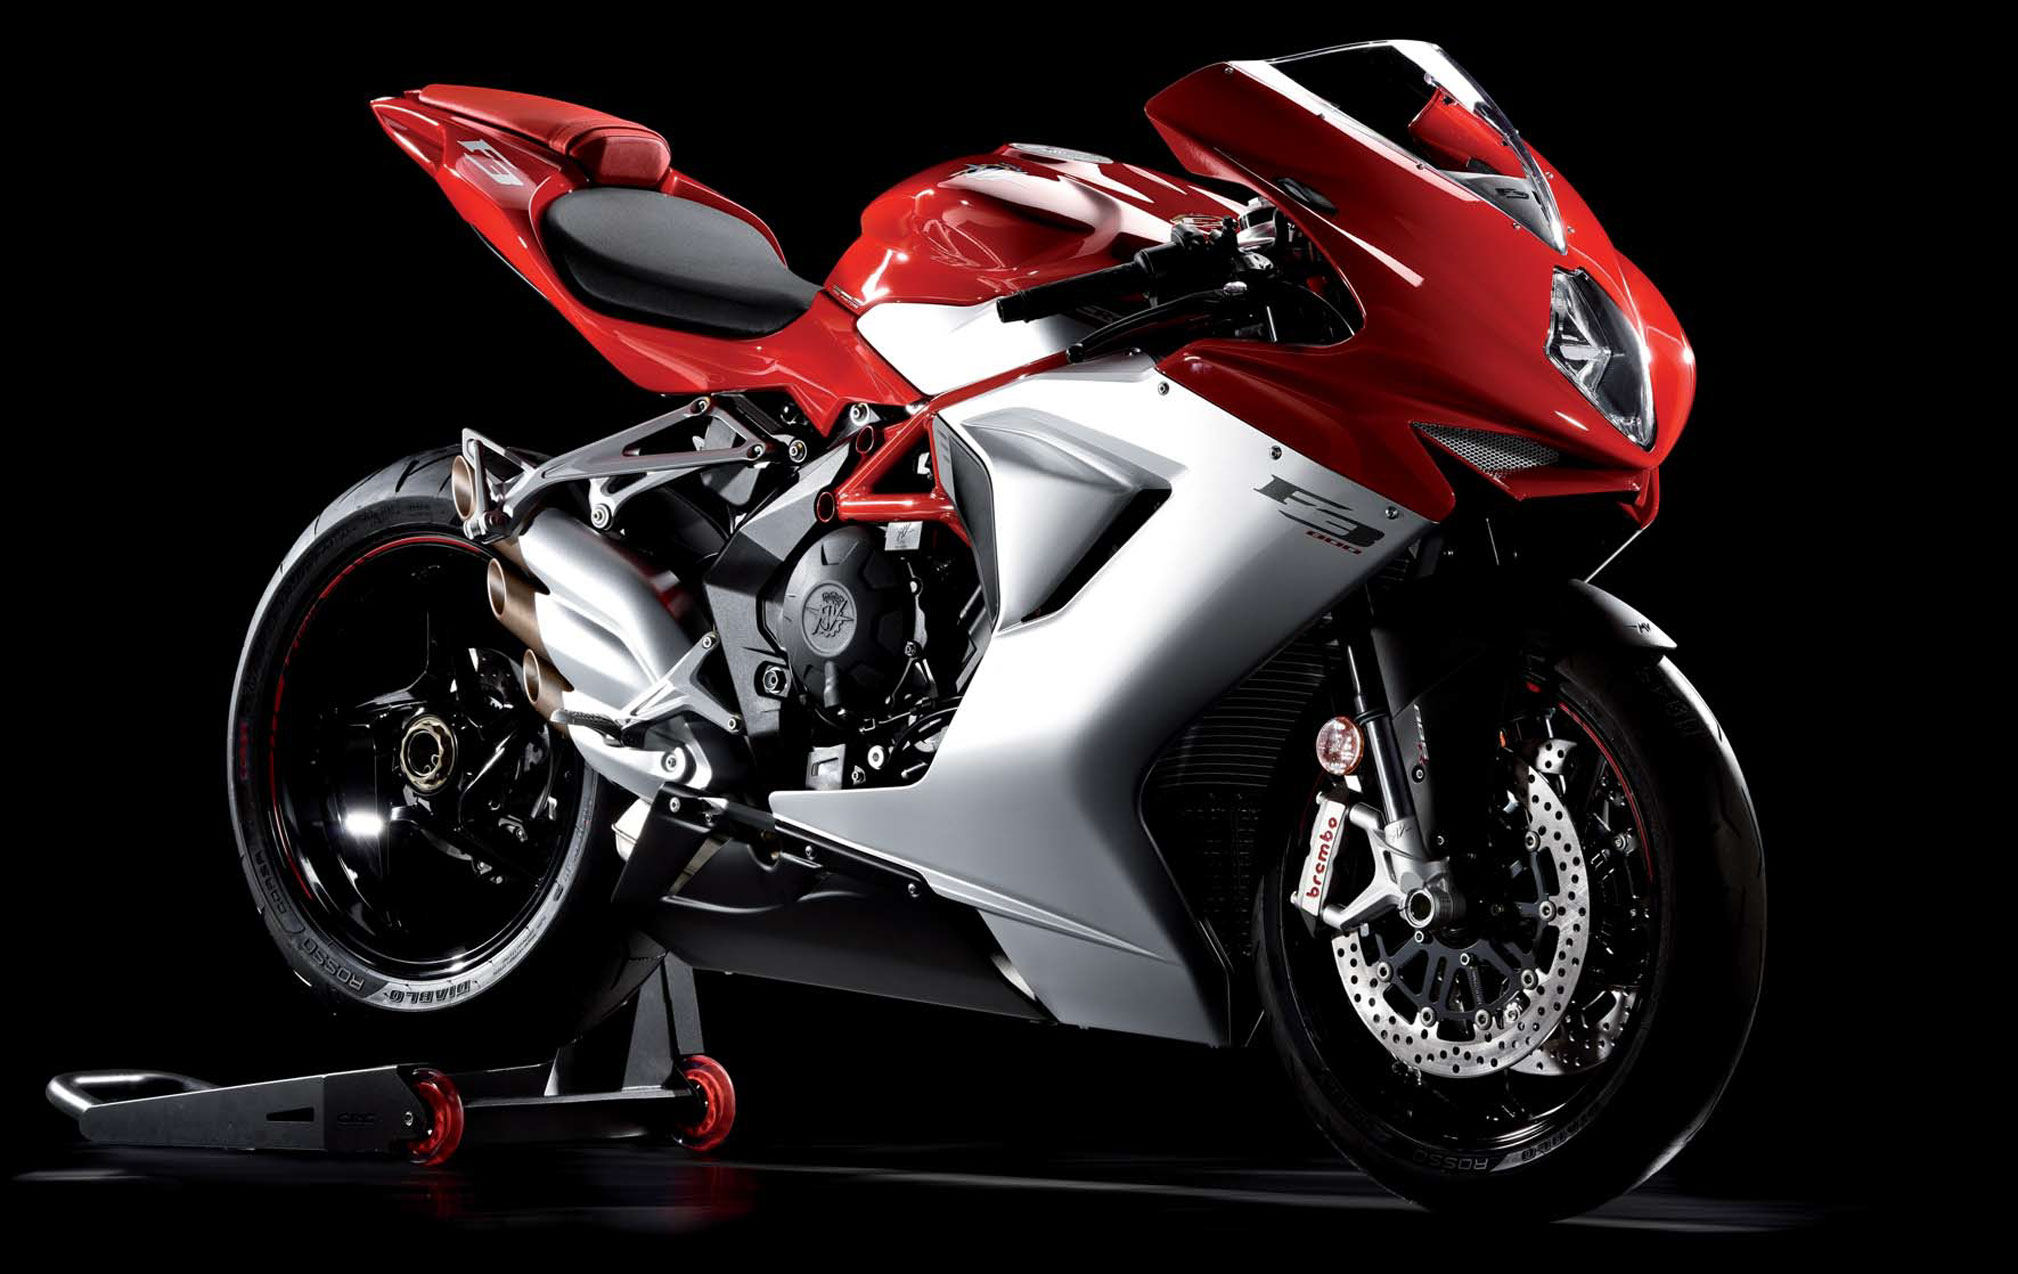 2018 MV Agusta F3 800 Review | TotalMotorcycle